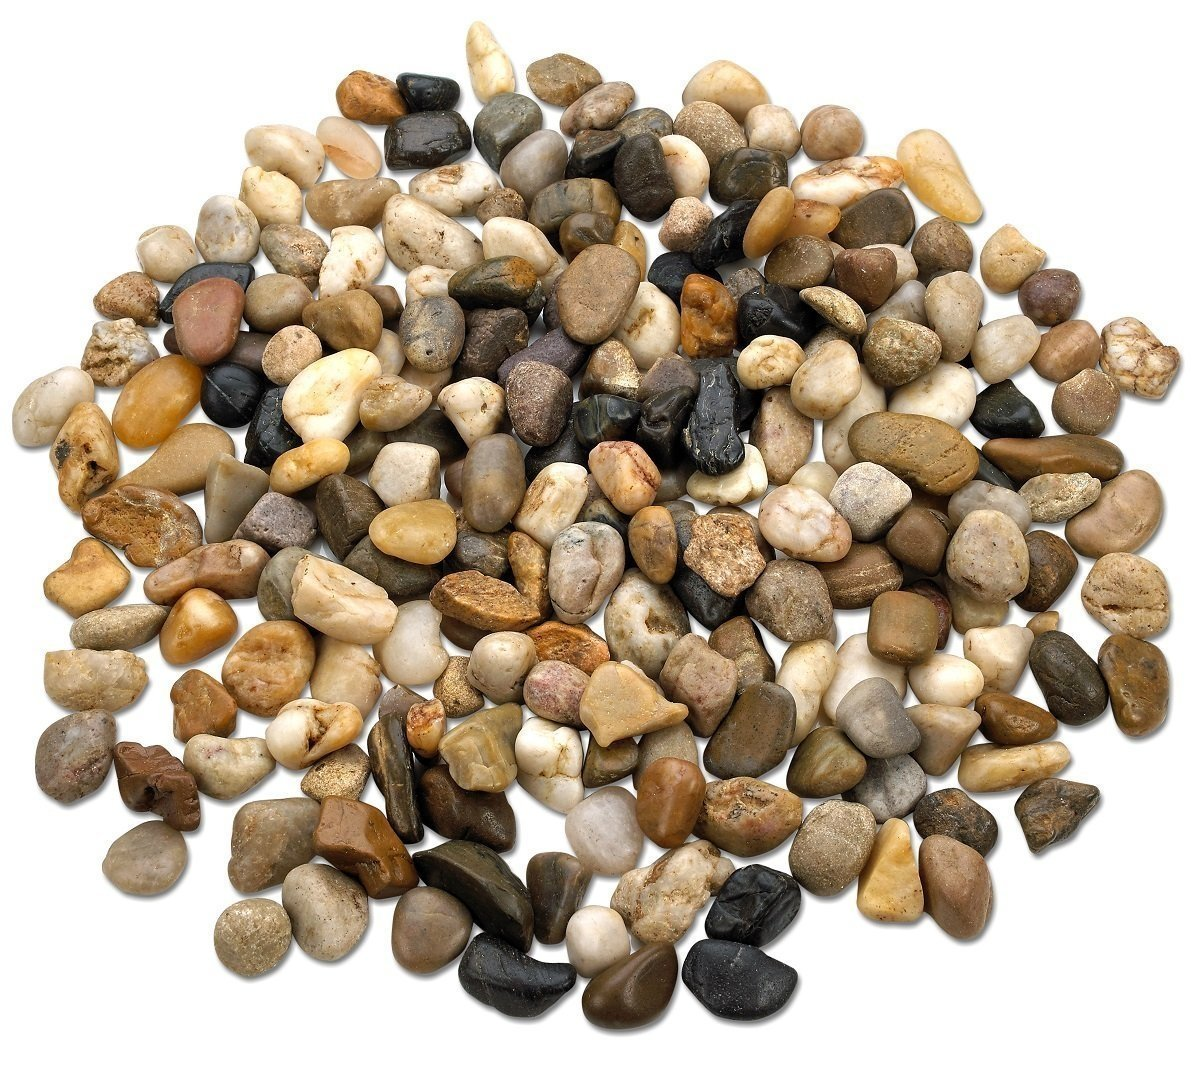 Details About 2 Pounds Large Decorative River Rock Stones Natural Polished Mixed Color Stone